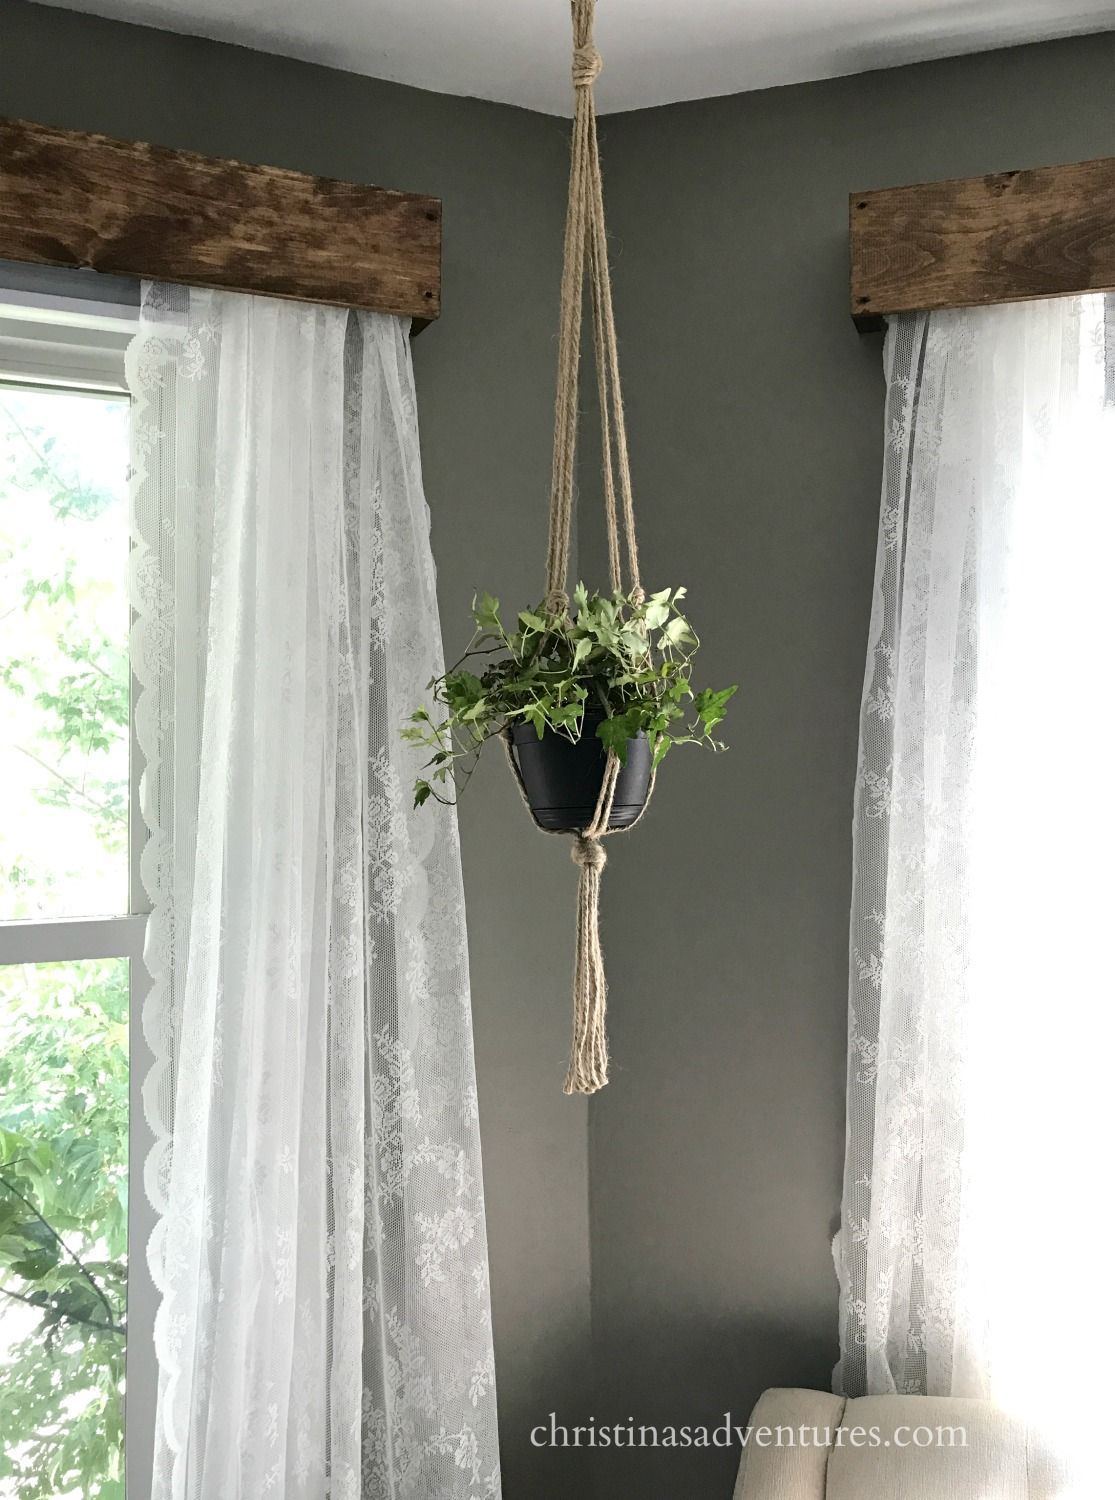 This Diy Wood Window Valance Pairs Beautifully With Lace Curtains And Adds The Per In 2020 With Images Wood Valances For Windows Wood Valance Farmhouse Window Treatments